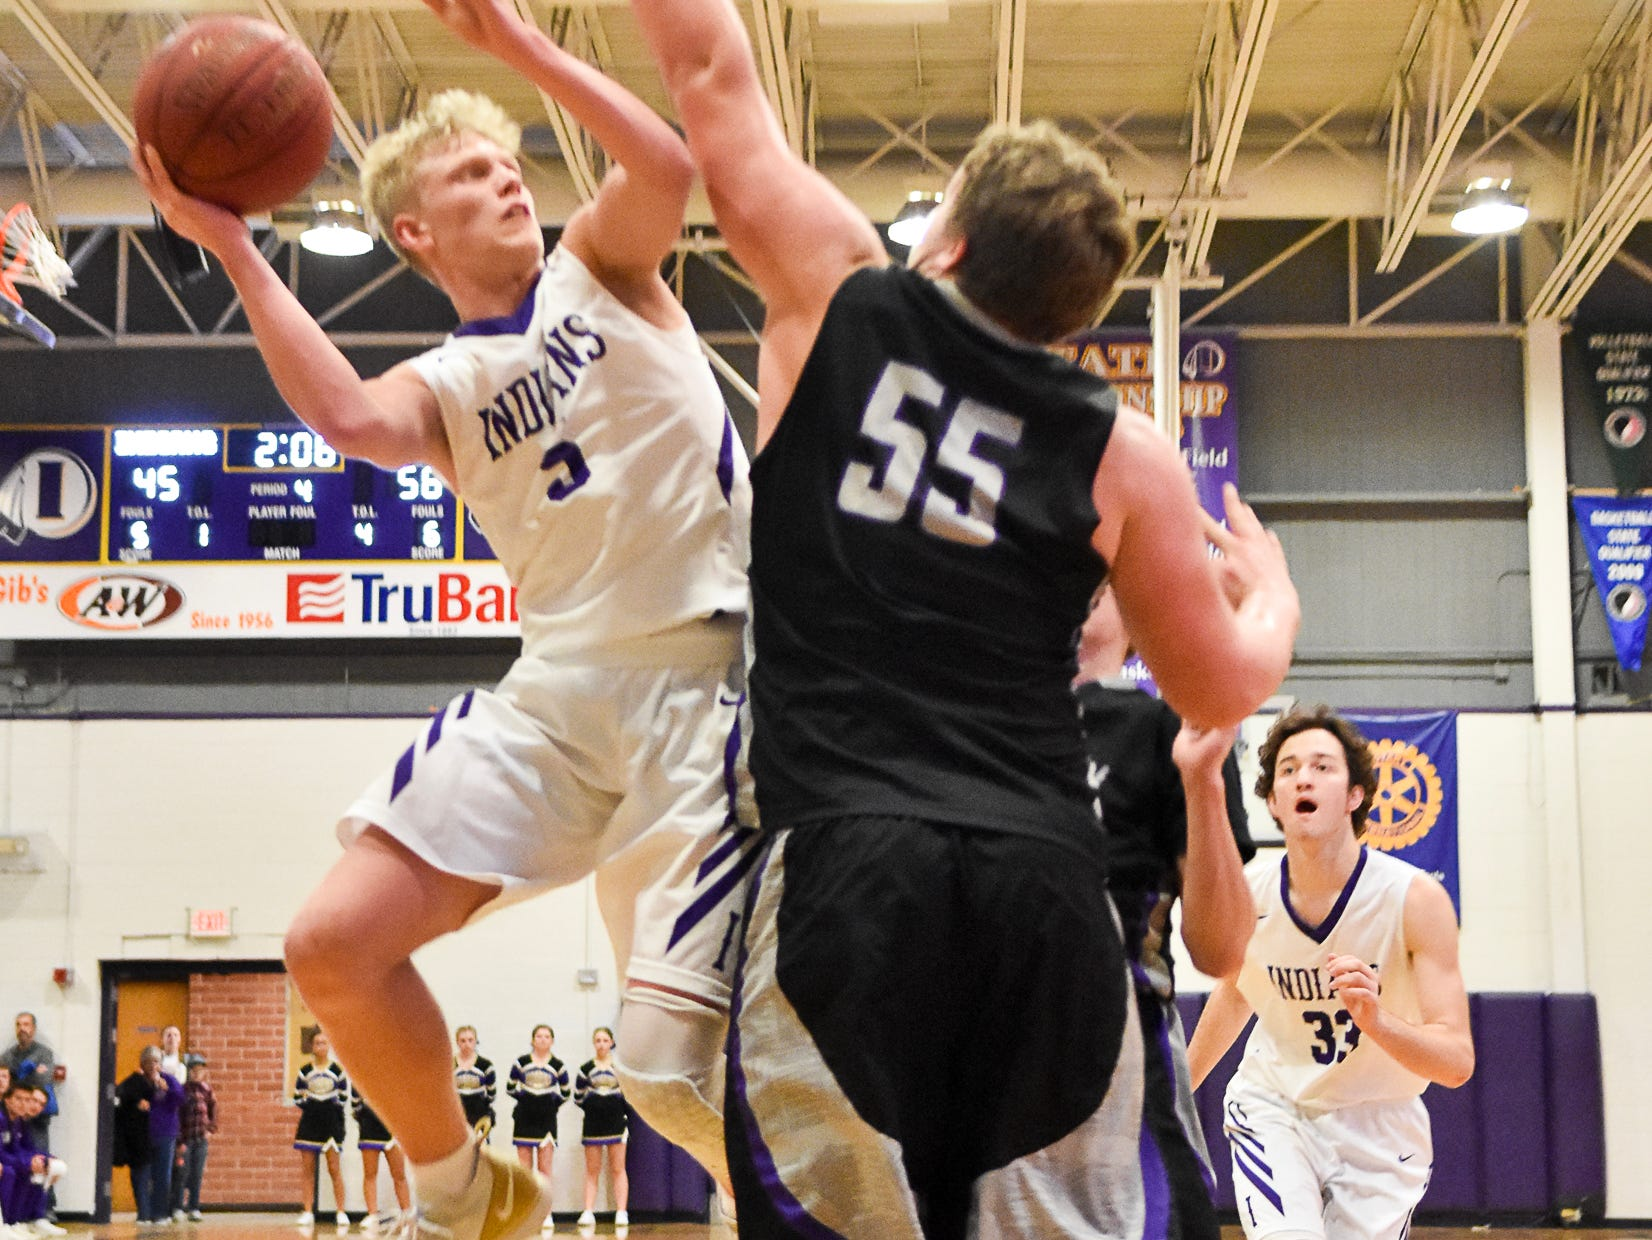 Norwalk's Tyler Endres defends against Quinn Vesey, of Indianola's boys basketball team. The Indianola boys slipped to 1-1 on the season with a 65-48 home loss to Norwalk on Nov. 30, 2018.